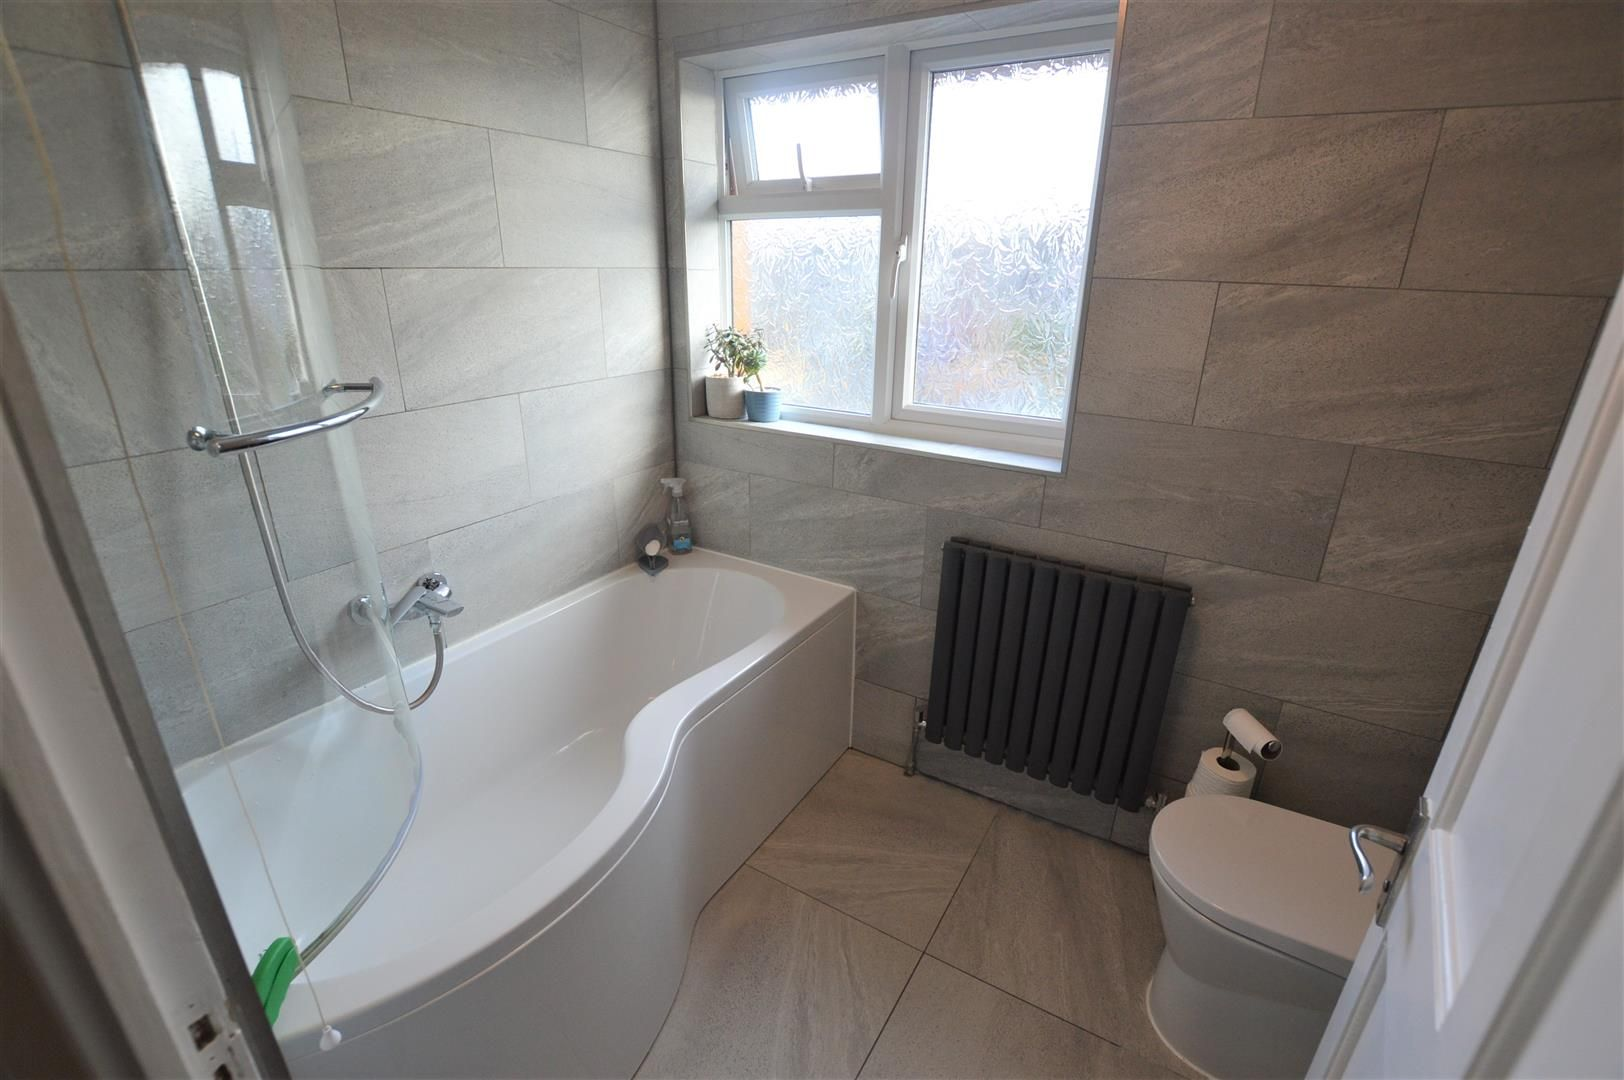 3 bed semi-detached for sale in Leominster 6